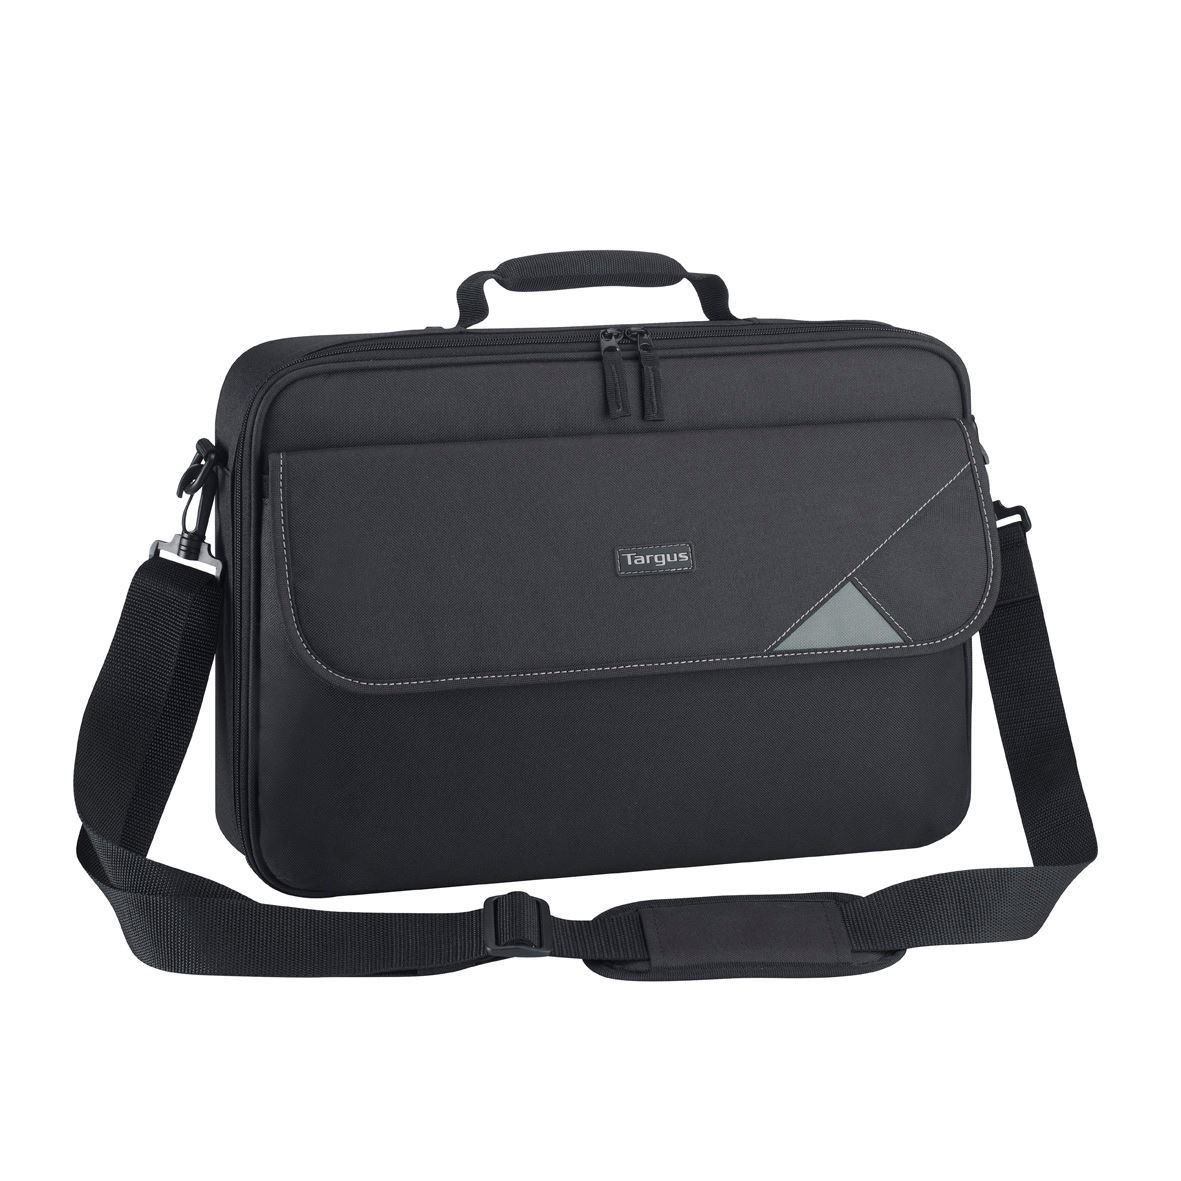 Targus Torba do Notebooka Intellect 17.3 Clamshell Blk